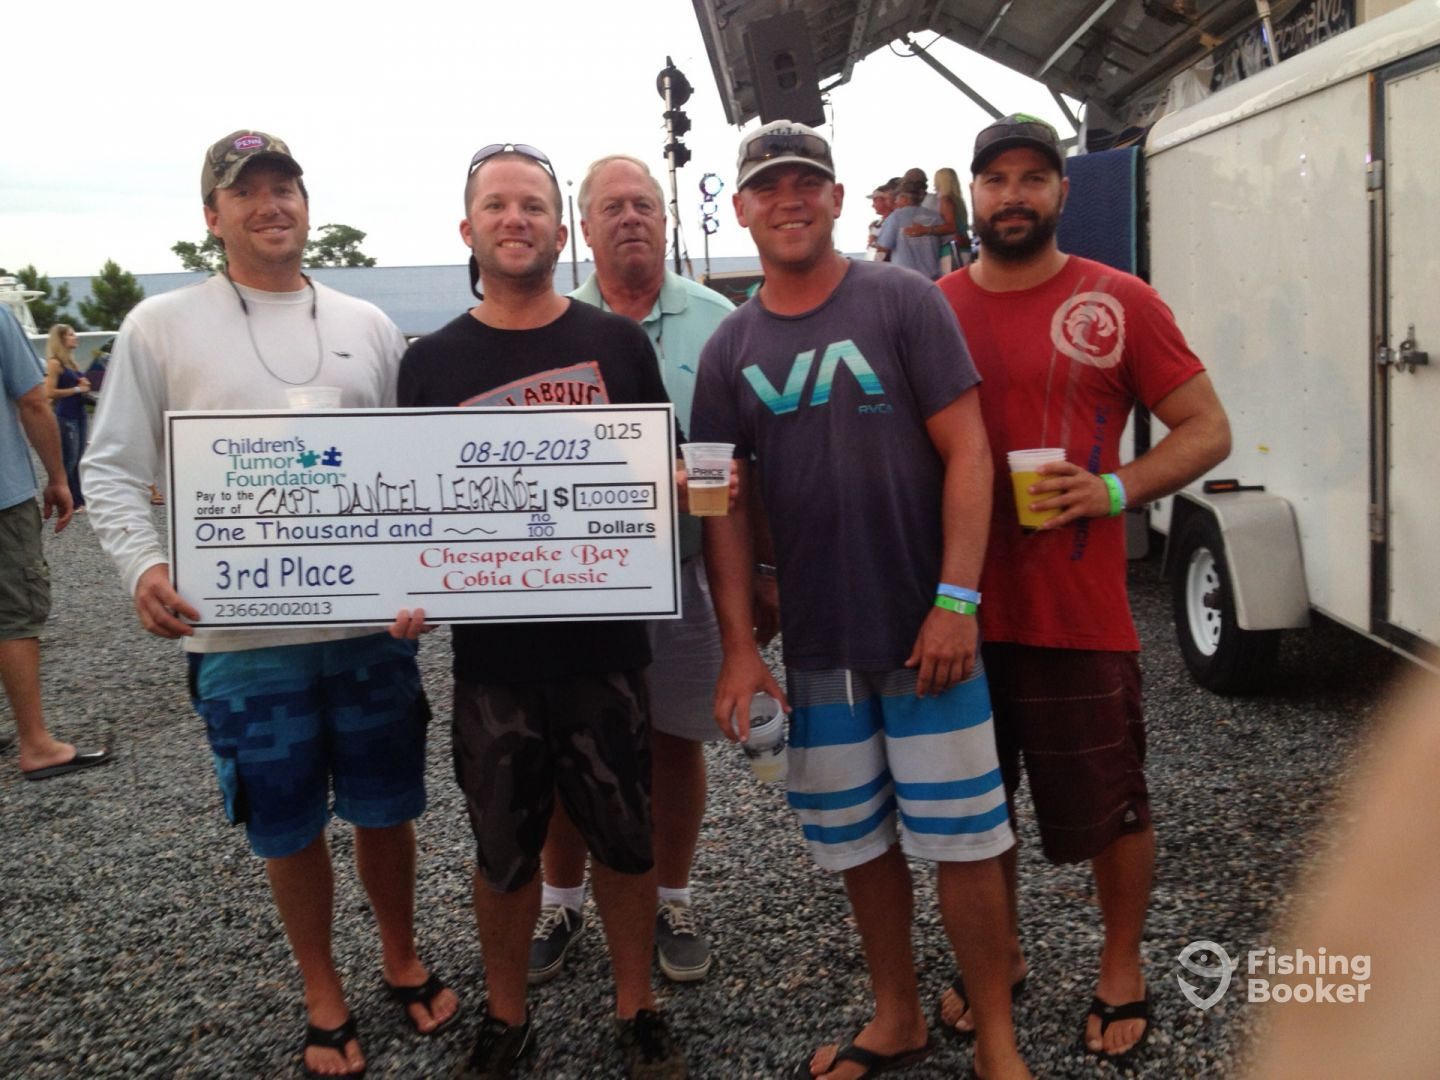 3rd Place Ches. Bay Cobia Classic